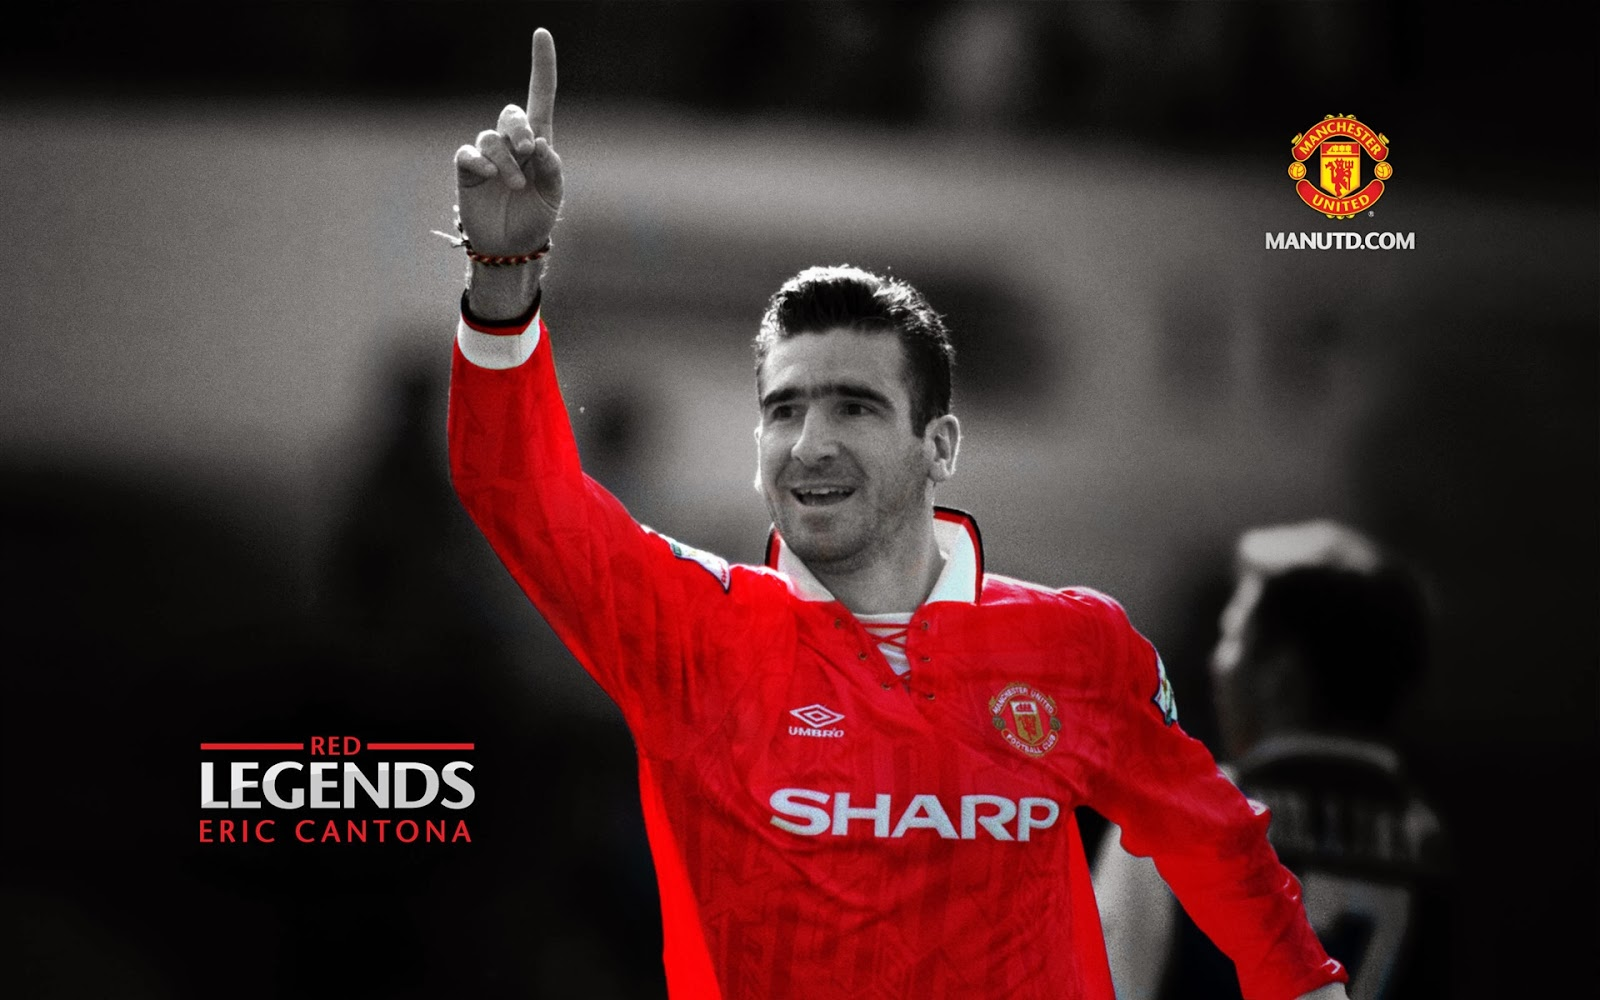 The man behind manchester united's revival as a footballing force. Eric Cantona: Red Legends Manchester United - Mystery ...